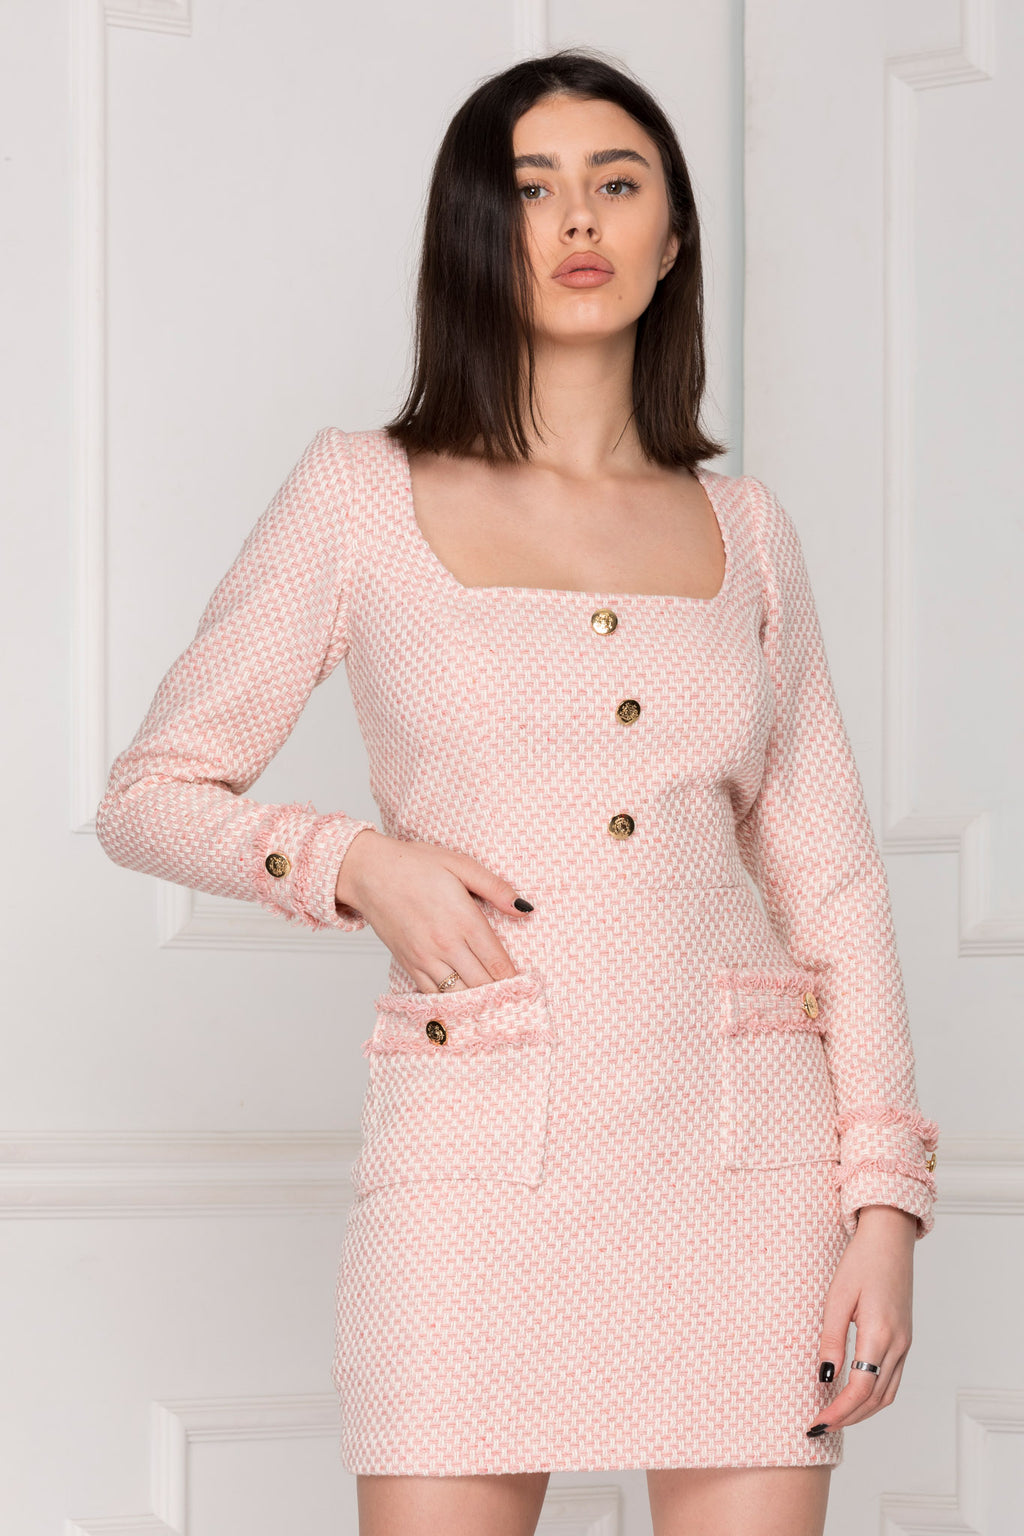 Classic Pink Tweed Dress perfect for office.